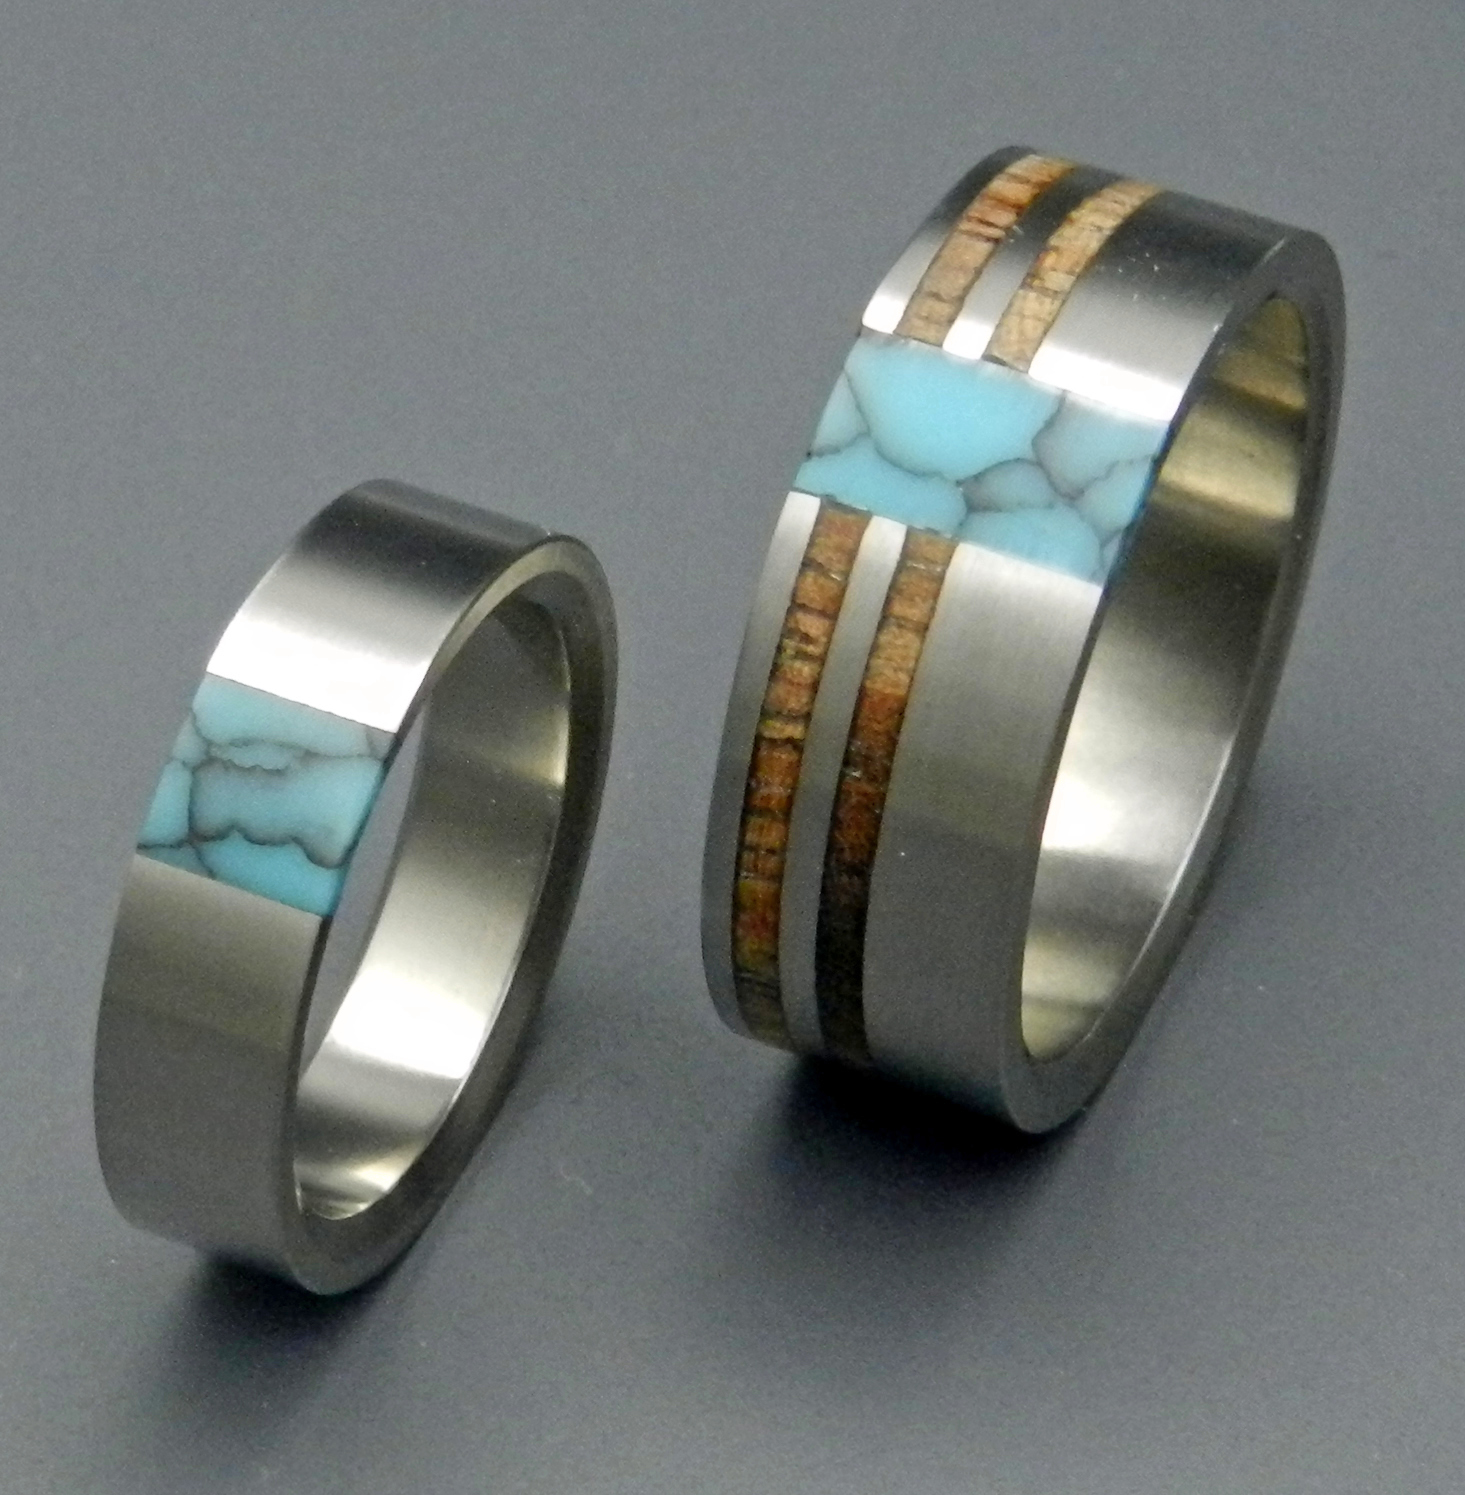 rings turquoise wedding unique wedding band sets Comet and Constellation Turquoise Wedding Titanium Rings